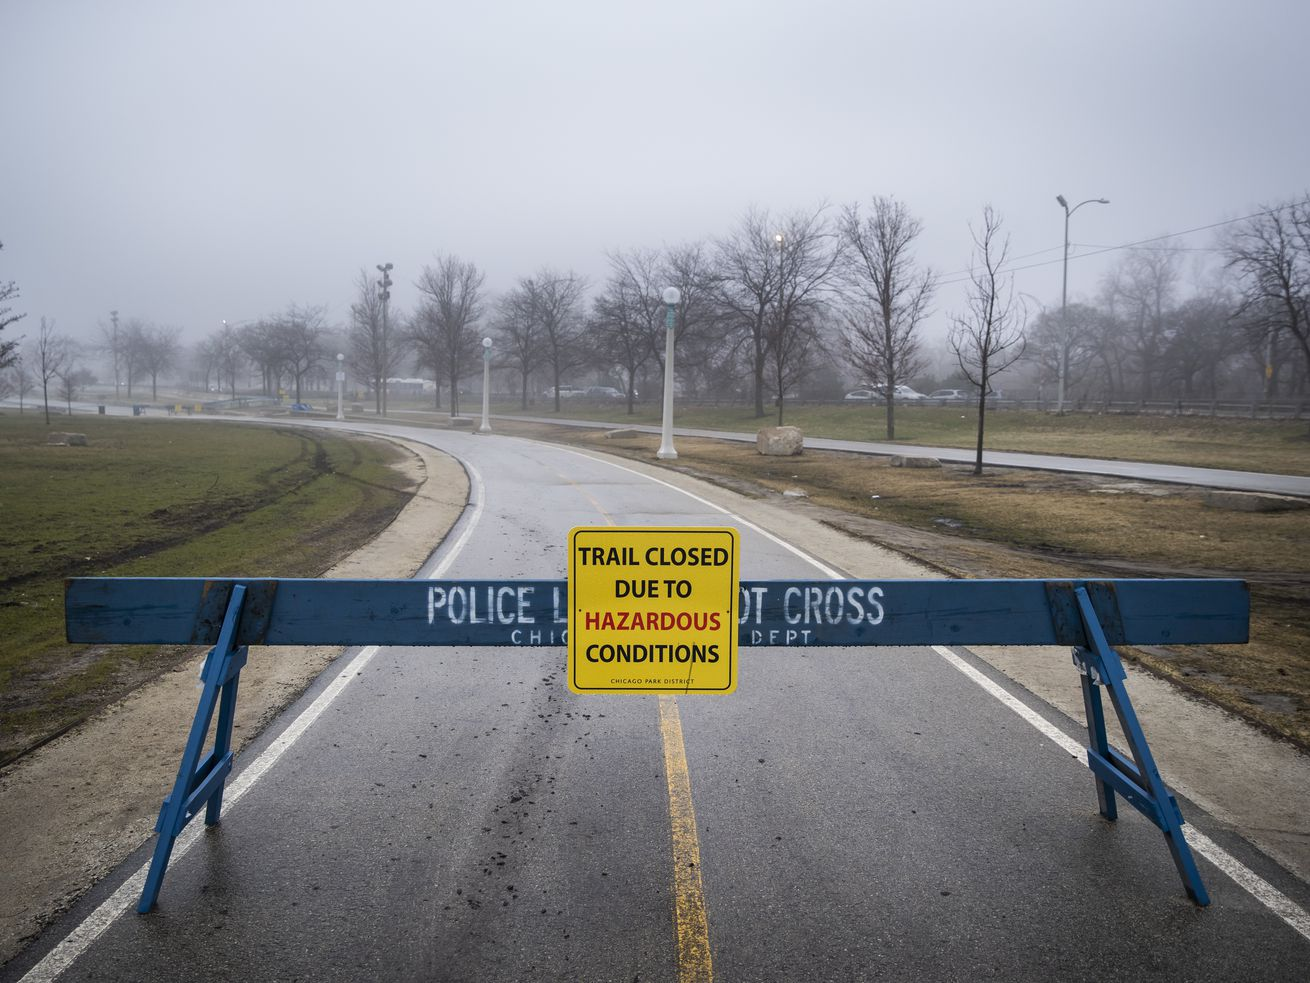 Barricades block access to the Lakefront Trail at Fullerton Avenue.